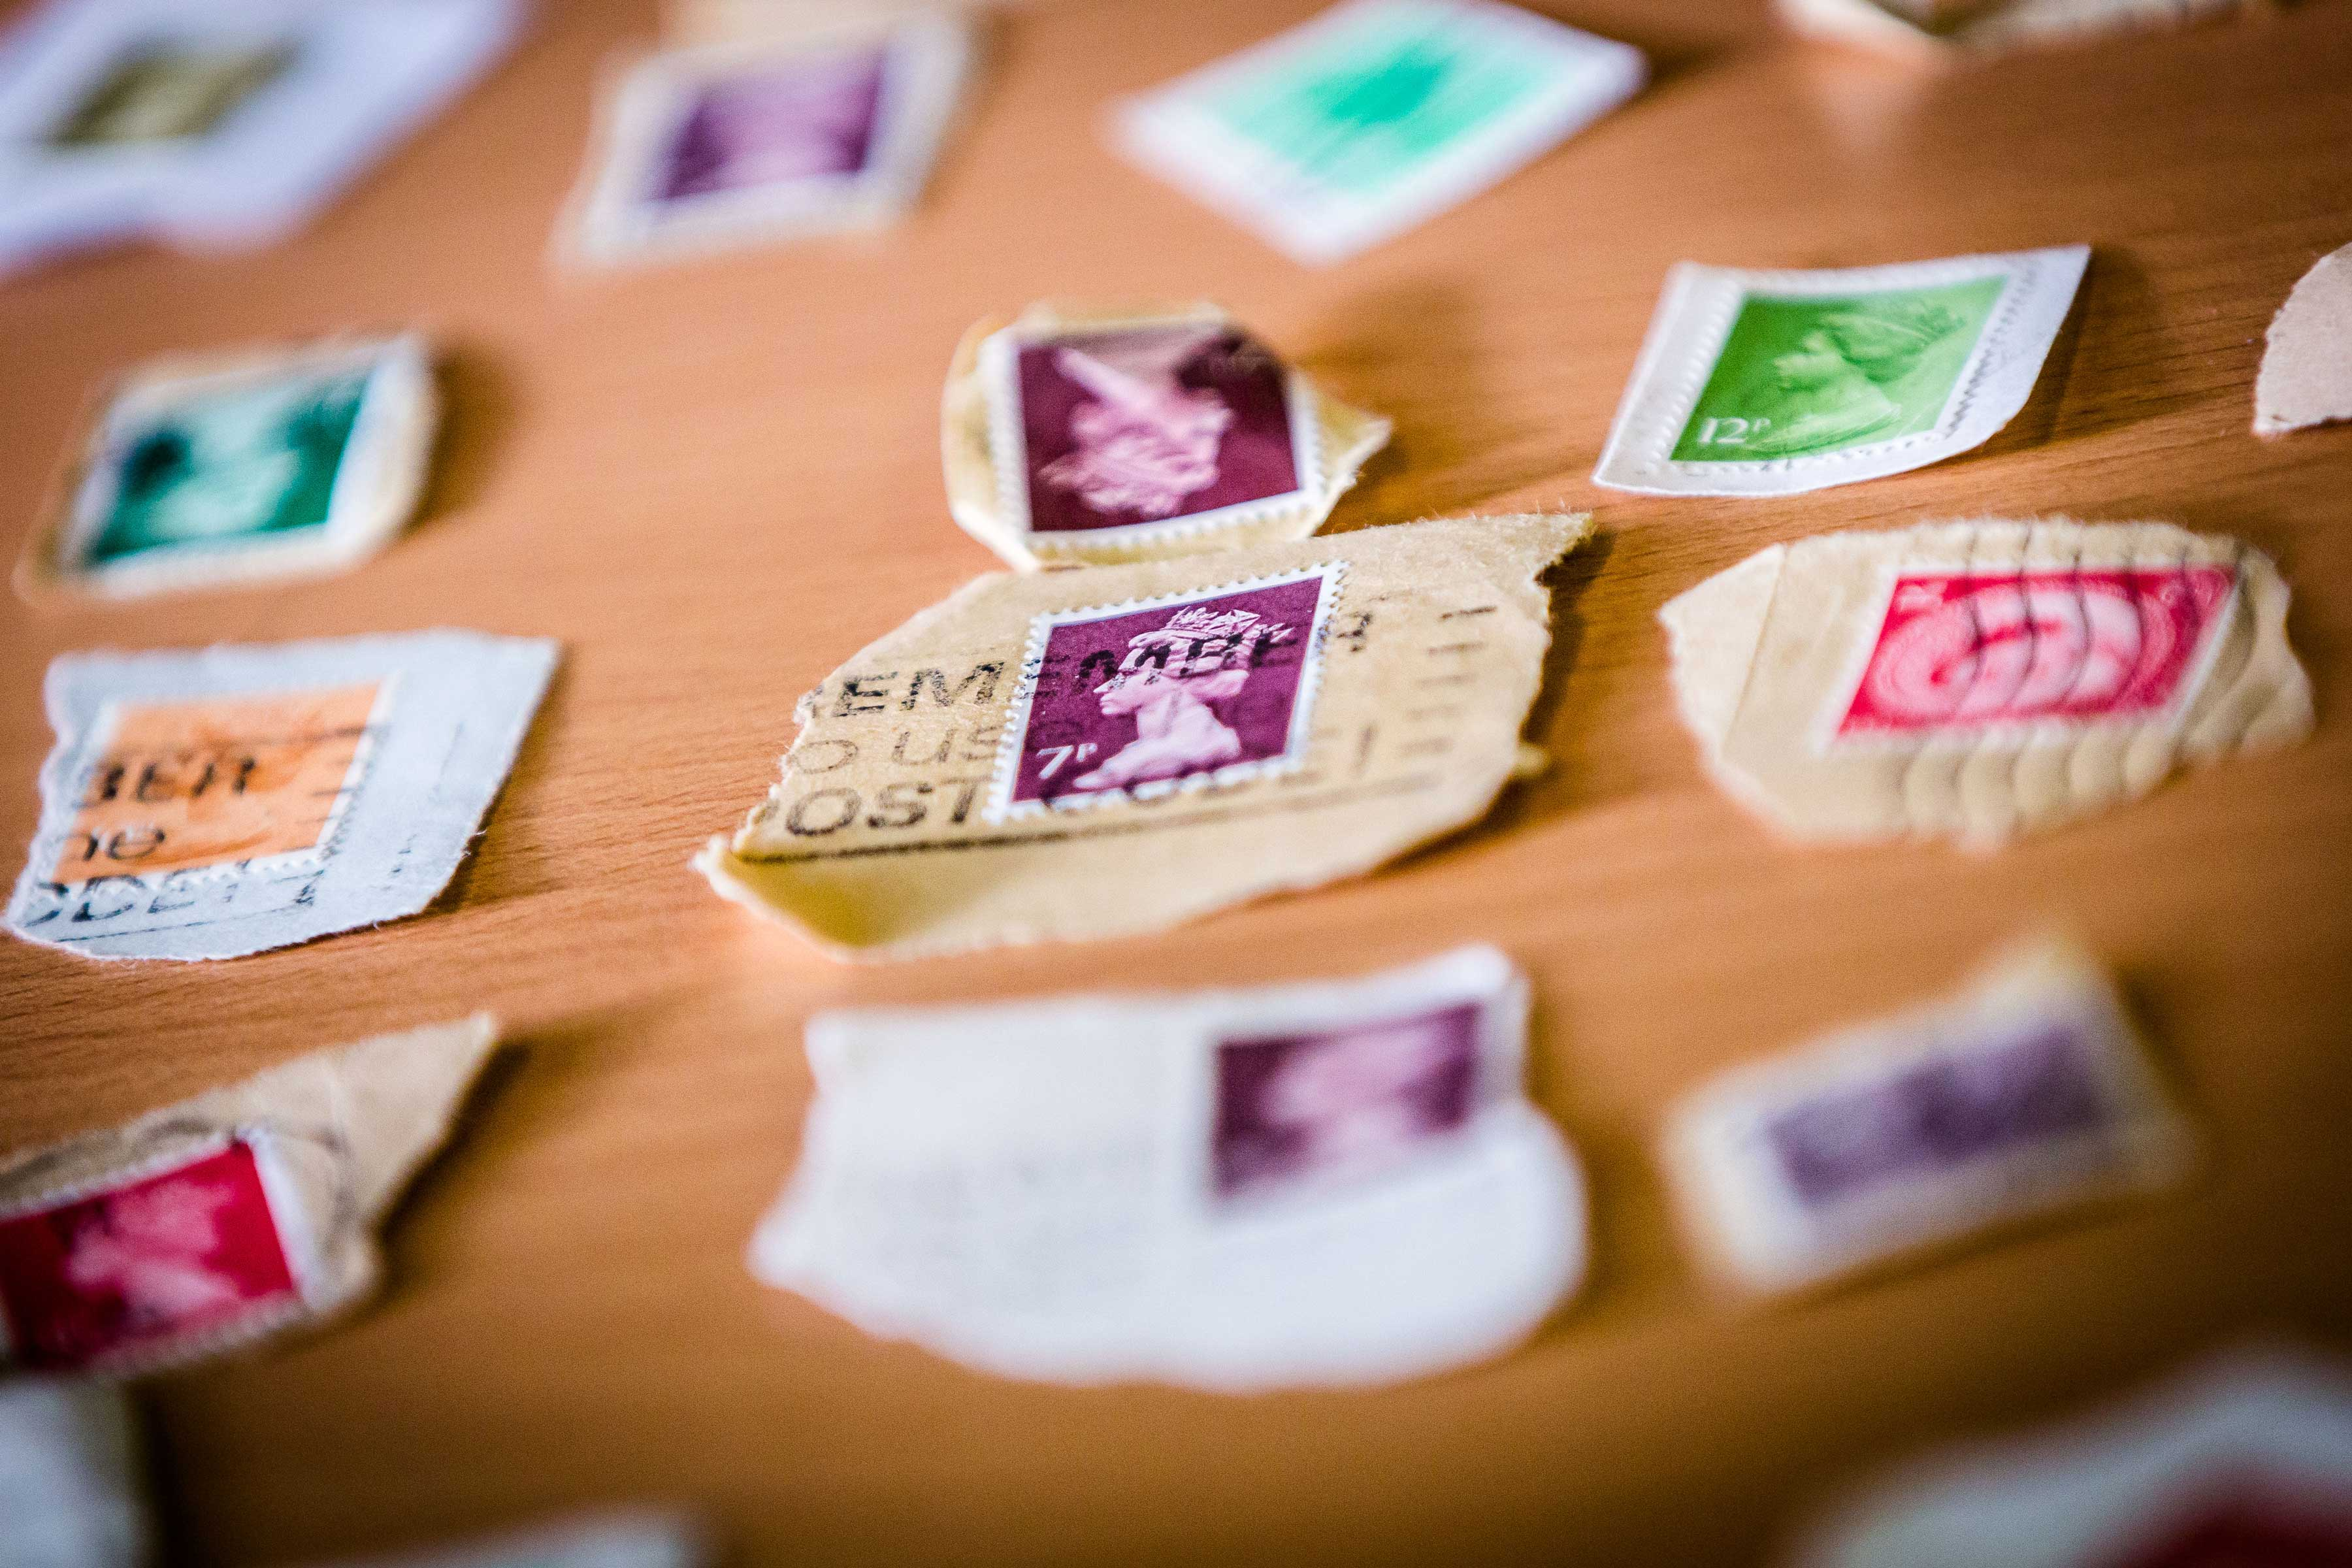 A selection of stamps